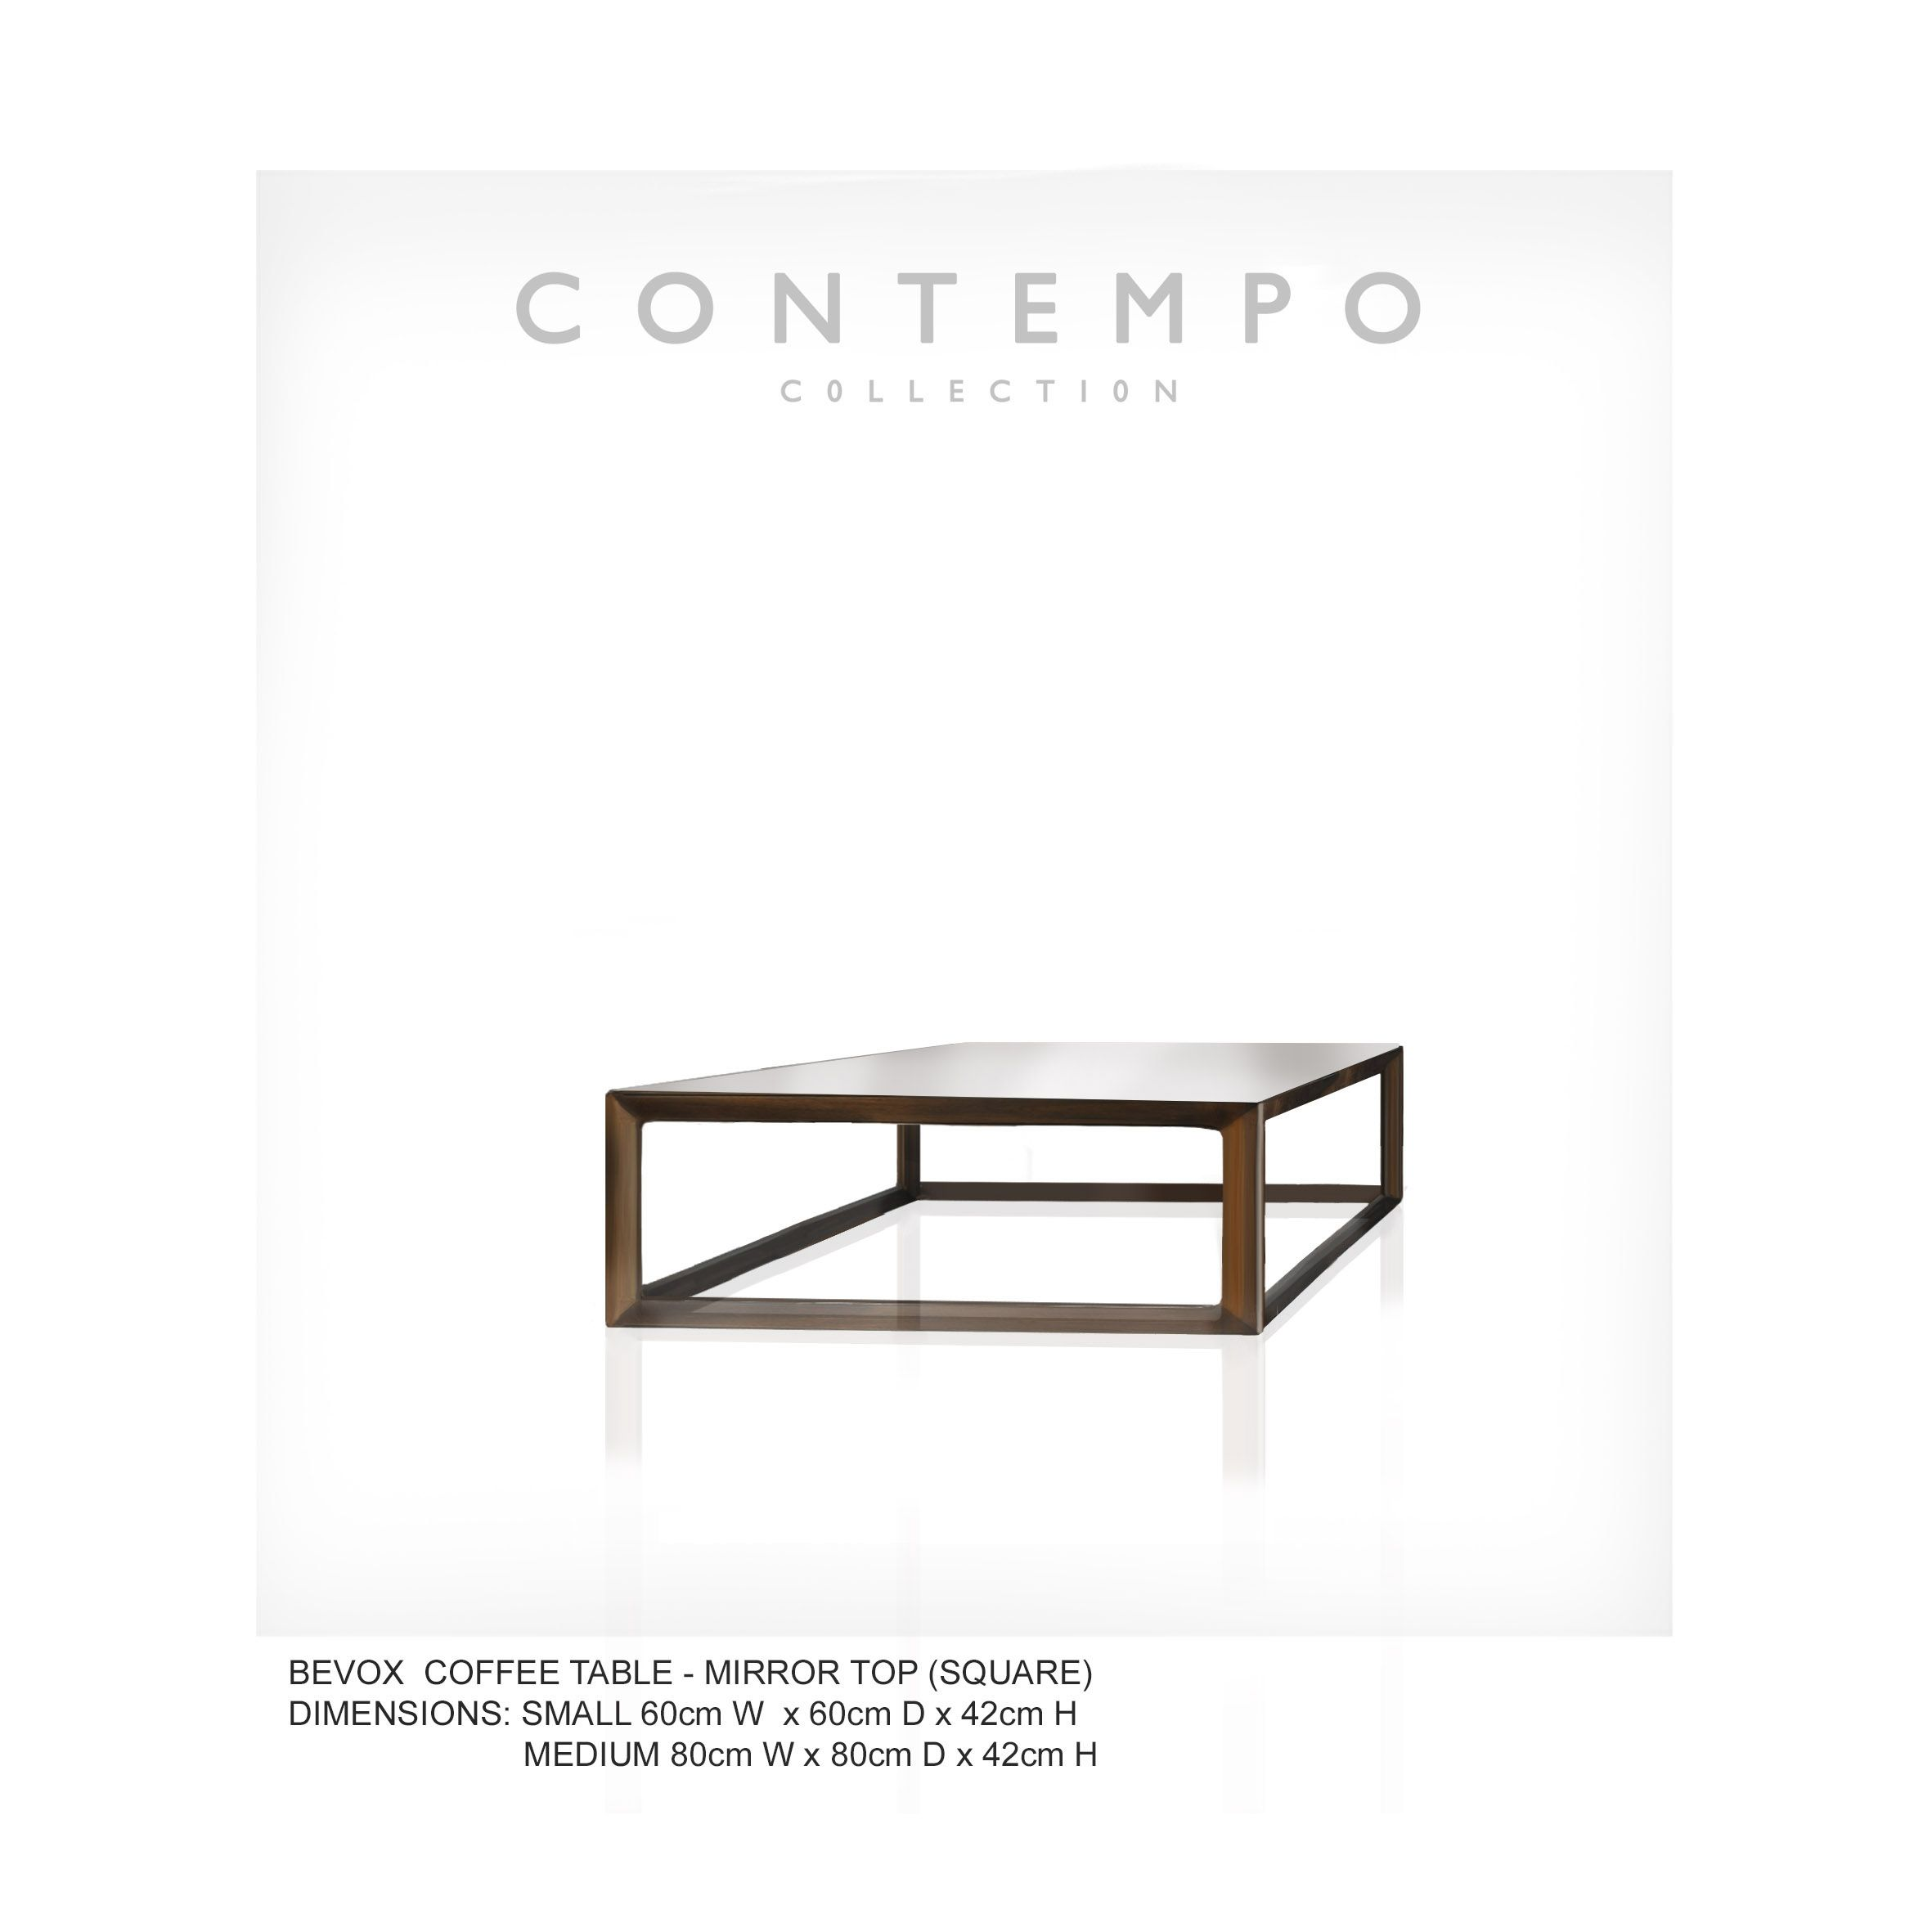 Lr Bevox Coffee Table Square The Contempo Collection Was Created For The Premier Artisan Furniture Luxury Furniture Stores Contemporary Living Room Furniture